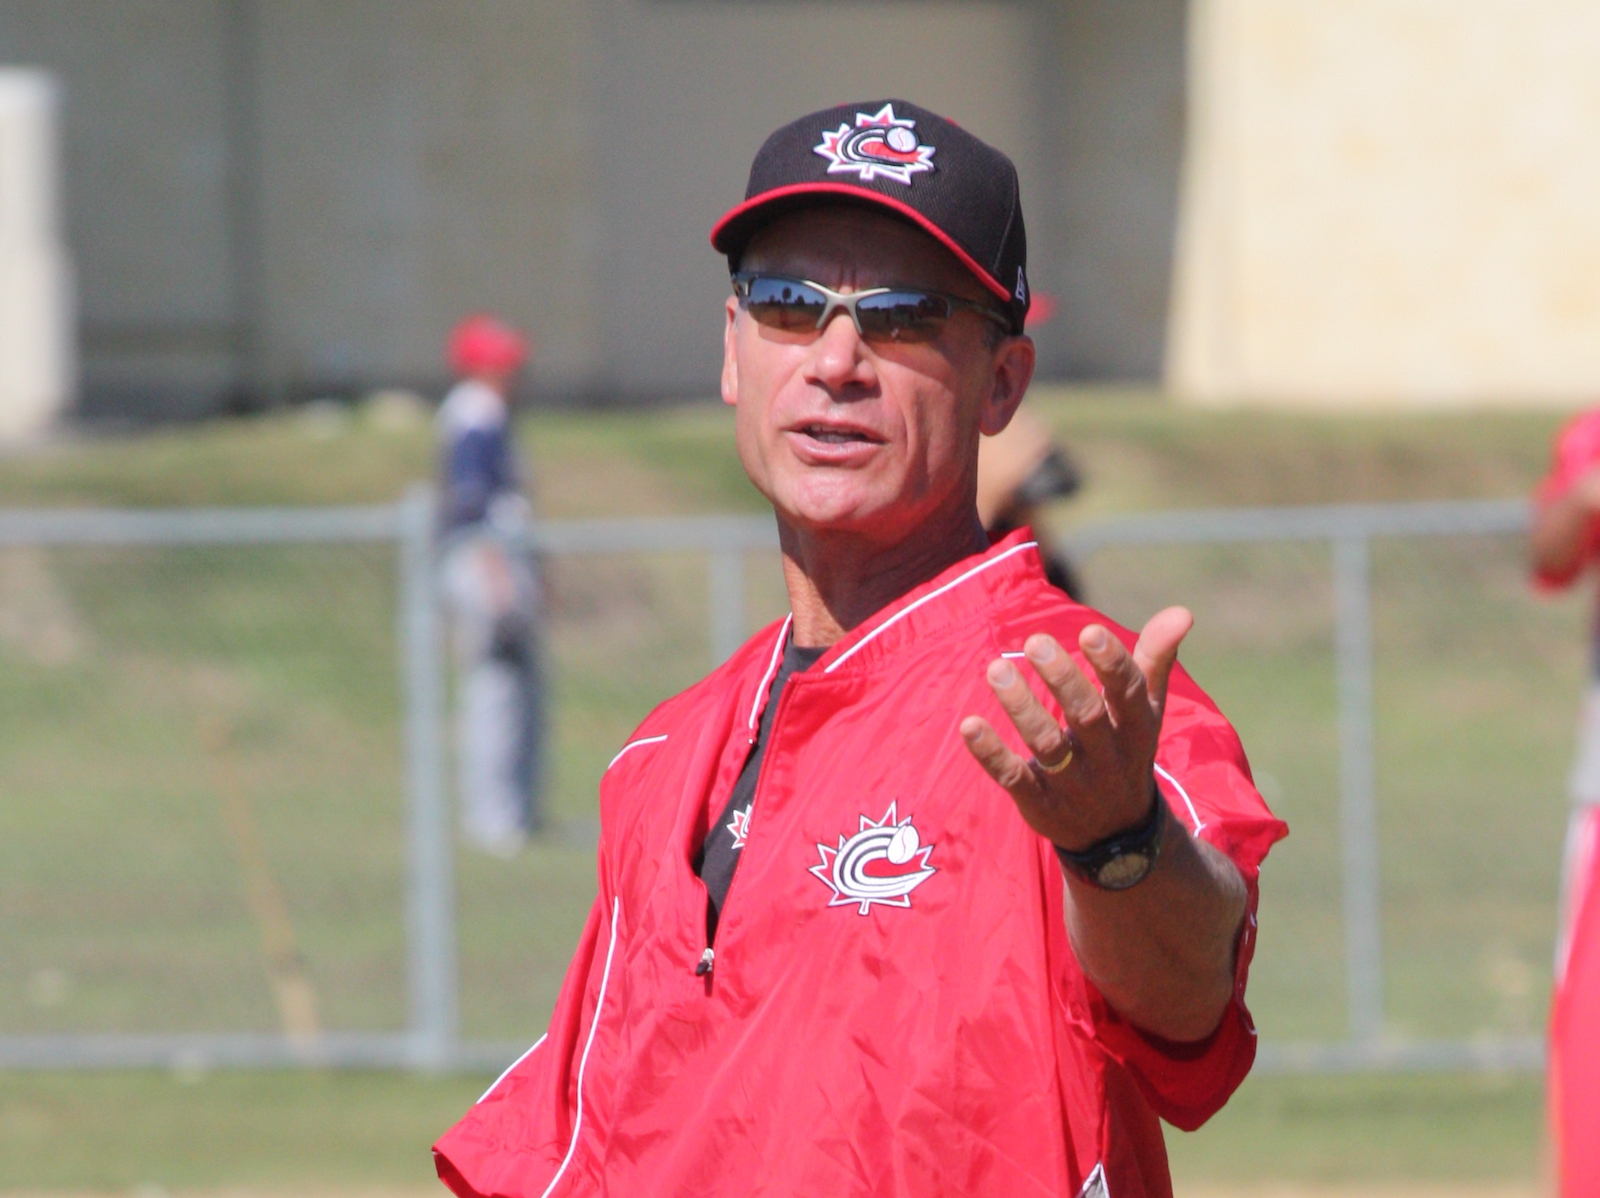 Coach Greg Hamilton (Ottawa, Ont.) and his staff have selected Canada's roster for the 18U World Cup which begins in Japan this week.